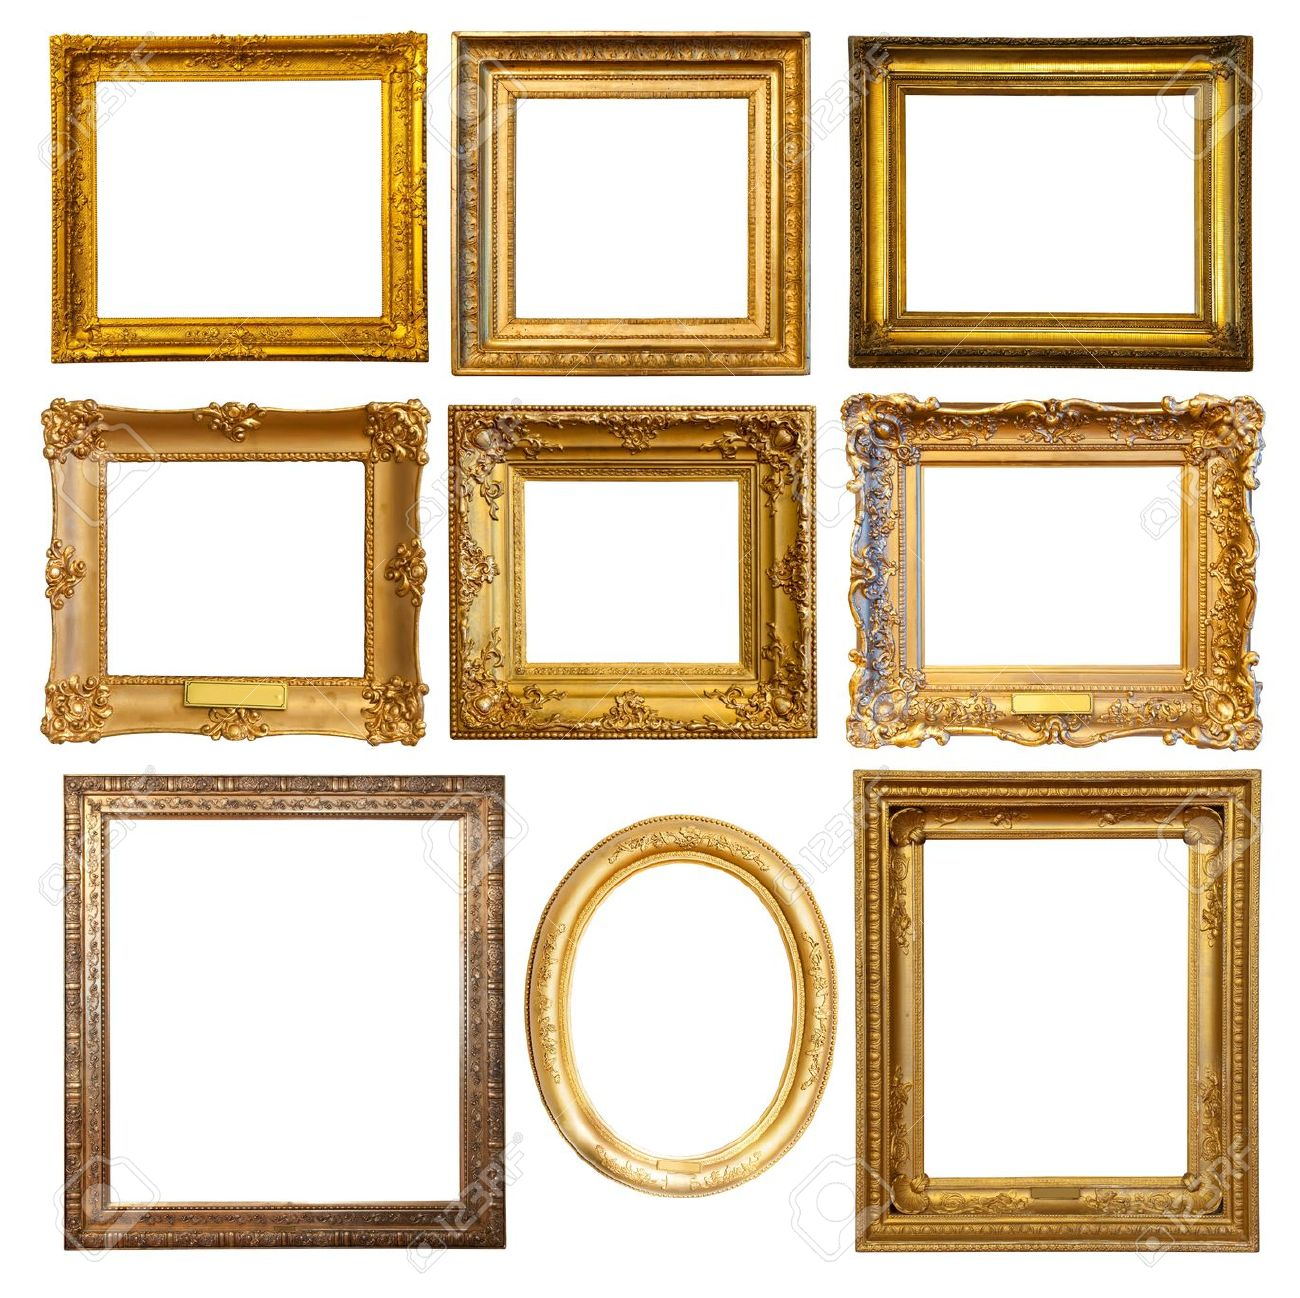 Multiple empty picture frames outstanding wall decor frames ideas multiple empty picture frames set of few luxury golden frames isolated over white background jeuxipadfo Images